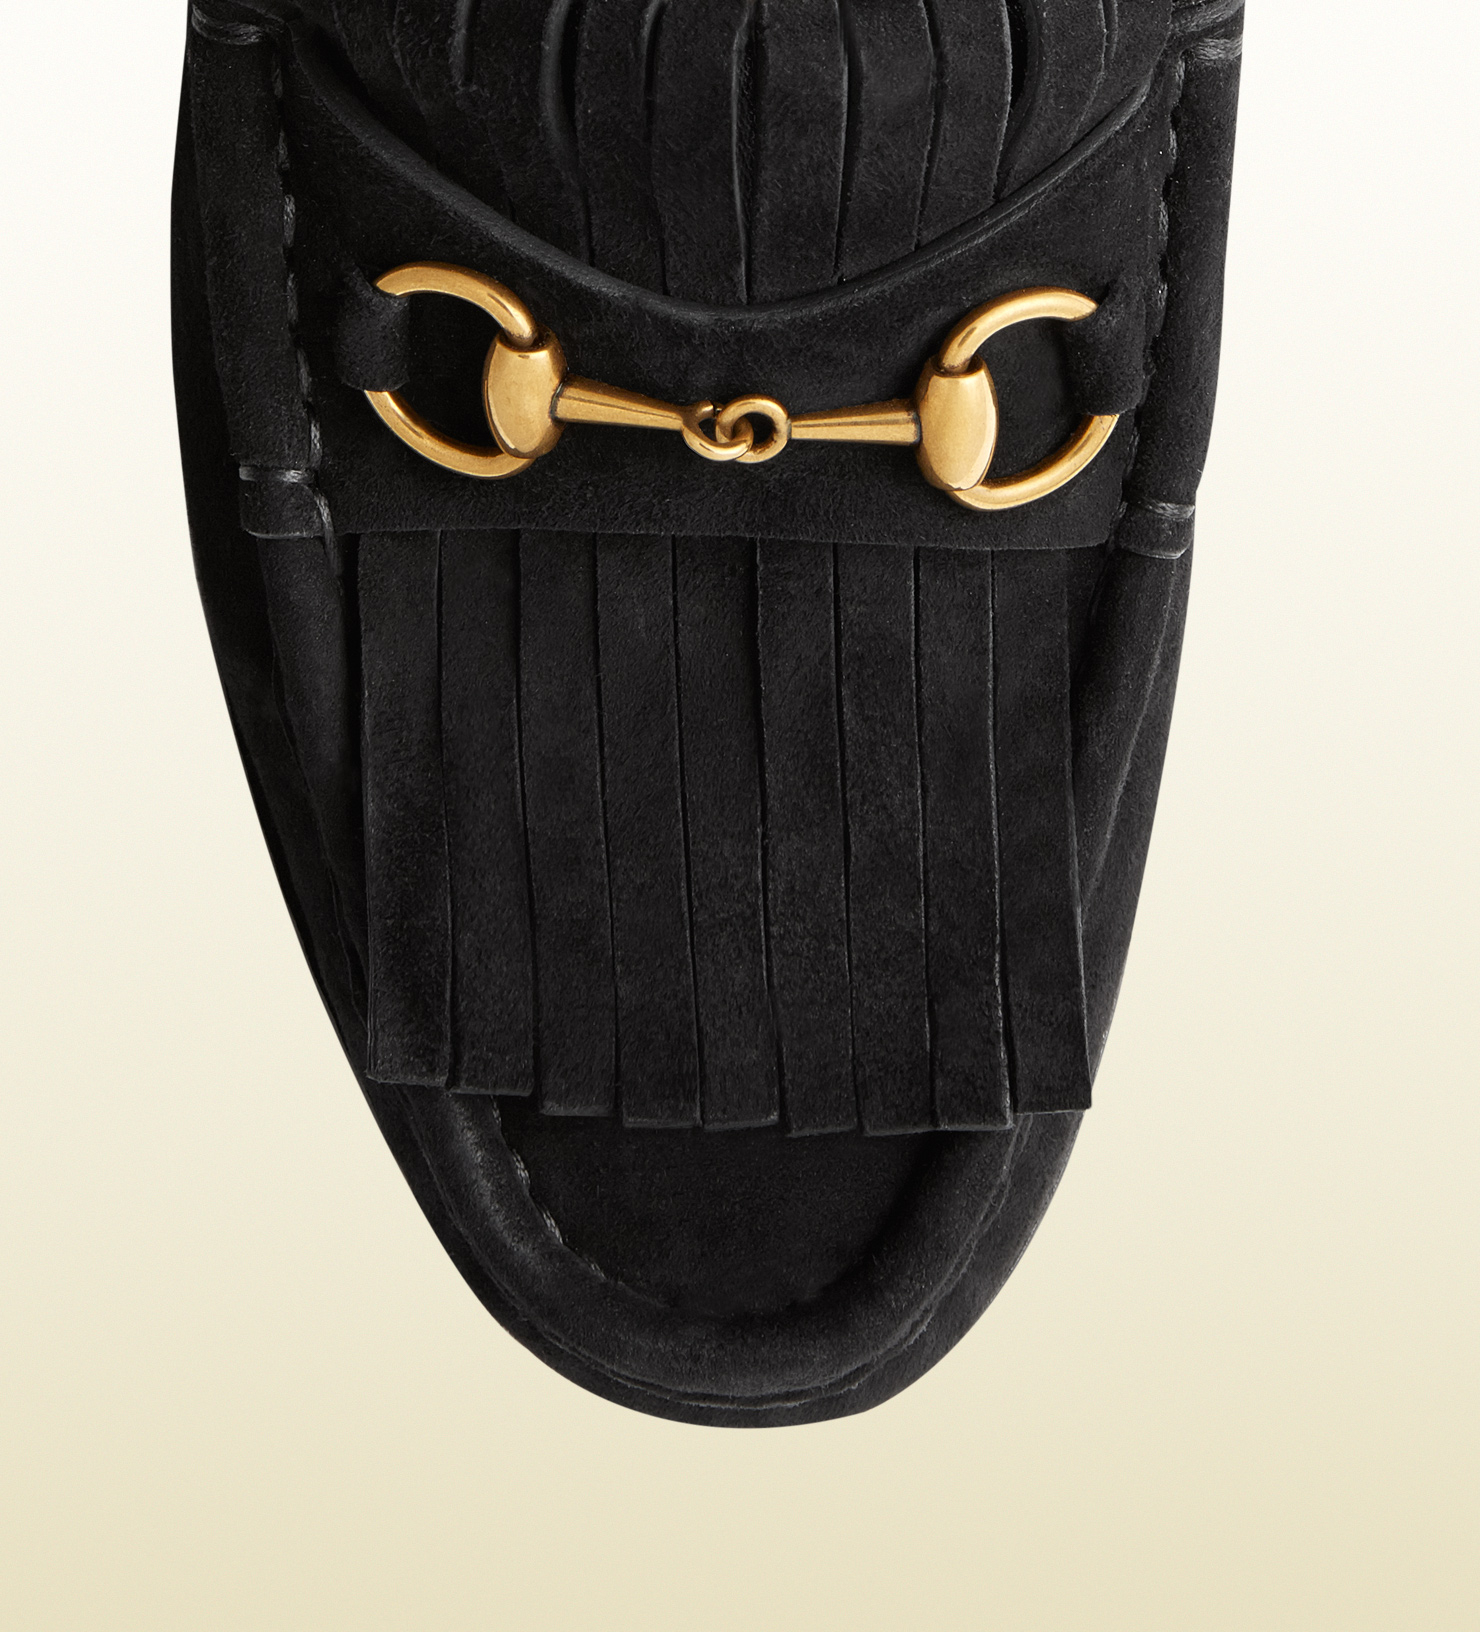 Lyst - Gucci Horsebit Loafer In Fringed Suede For Women in Black 993ee68a1